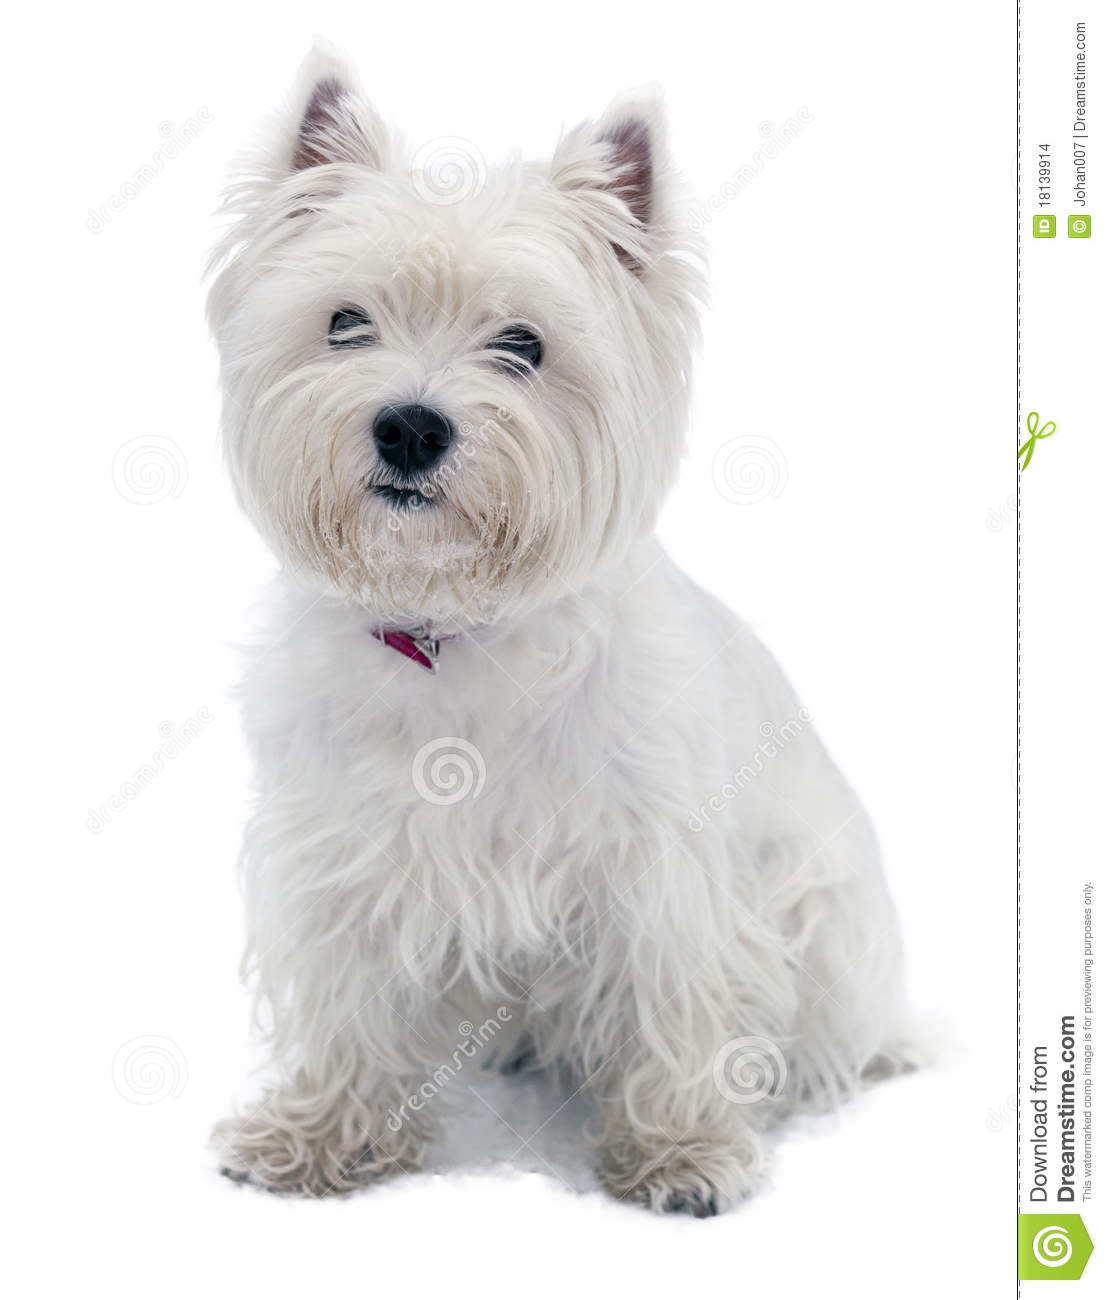 West Highland White Terrier Stock Images - Image: 18139914